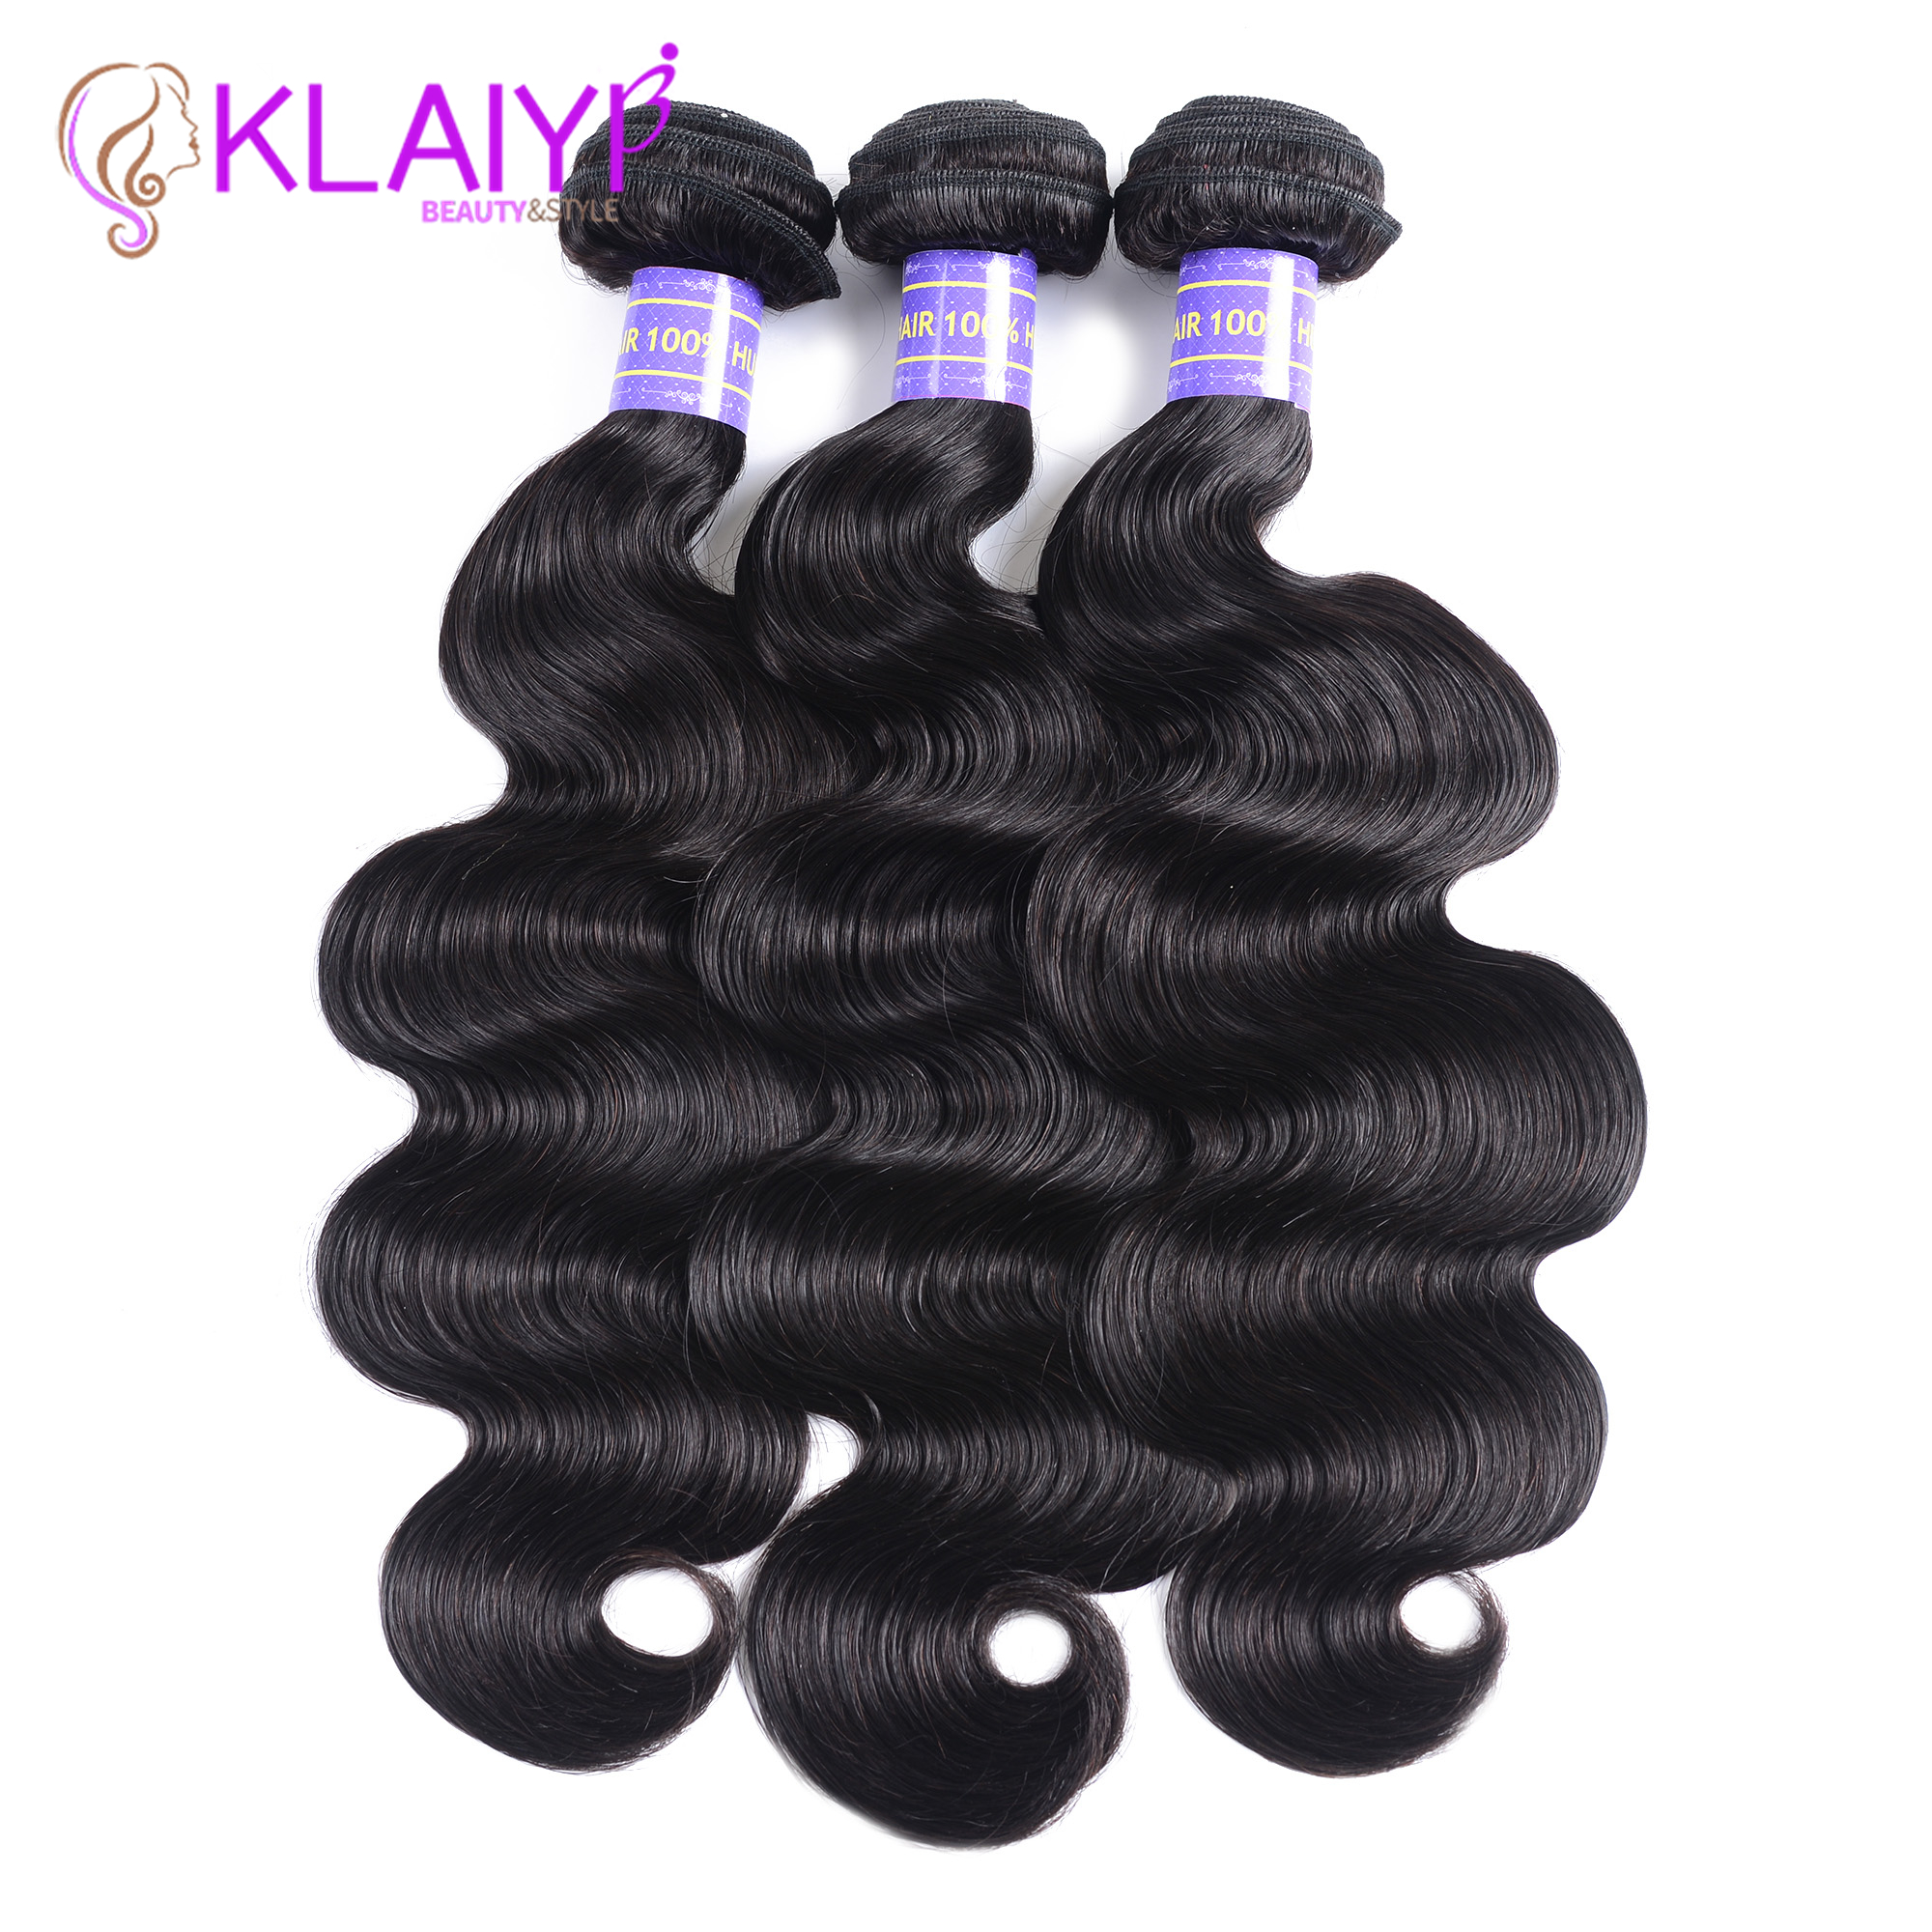 Klaiyi Brazilian Hair Weave 3 Bundles Body Wave Natural Black Color Human Hair Extension Remy Hair 3 Pieces/lot Can Be Dyed